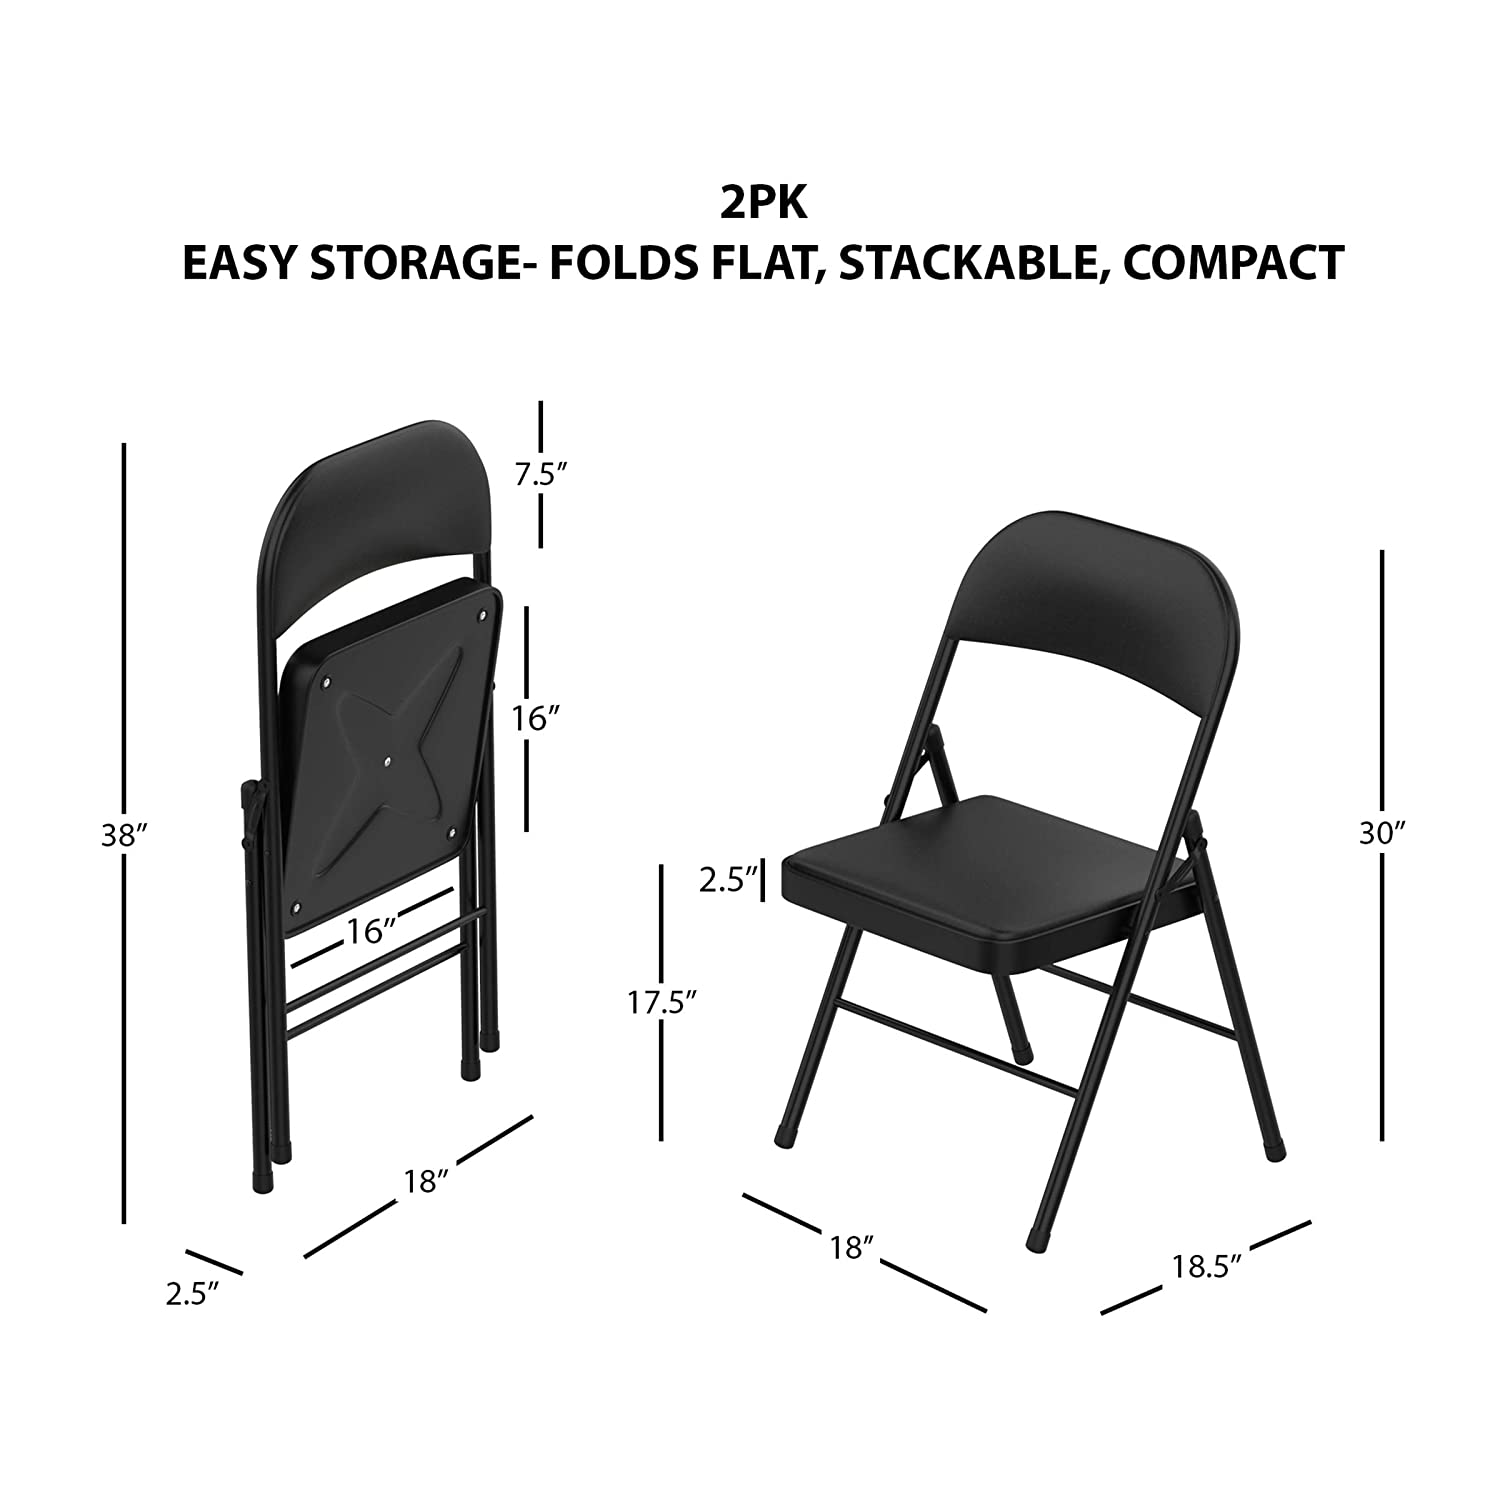 Lavish Home A022285 Folding Chairs – Foldable Steel Seat with Double Brace and Upholstered Vinyl Cushion for Indoor or Outdoor Use (Black, 2 Pc),